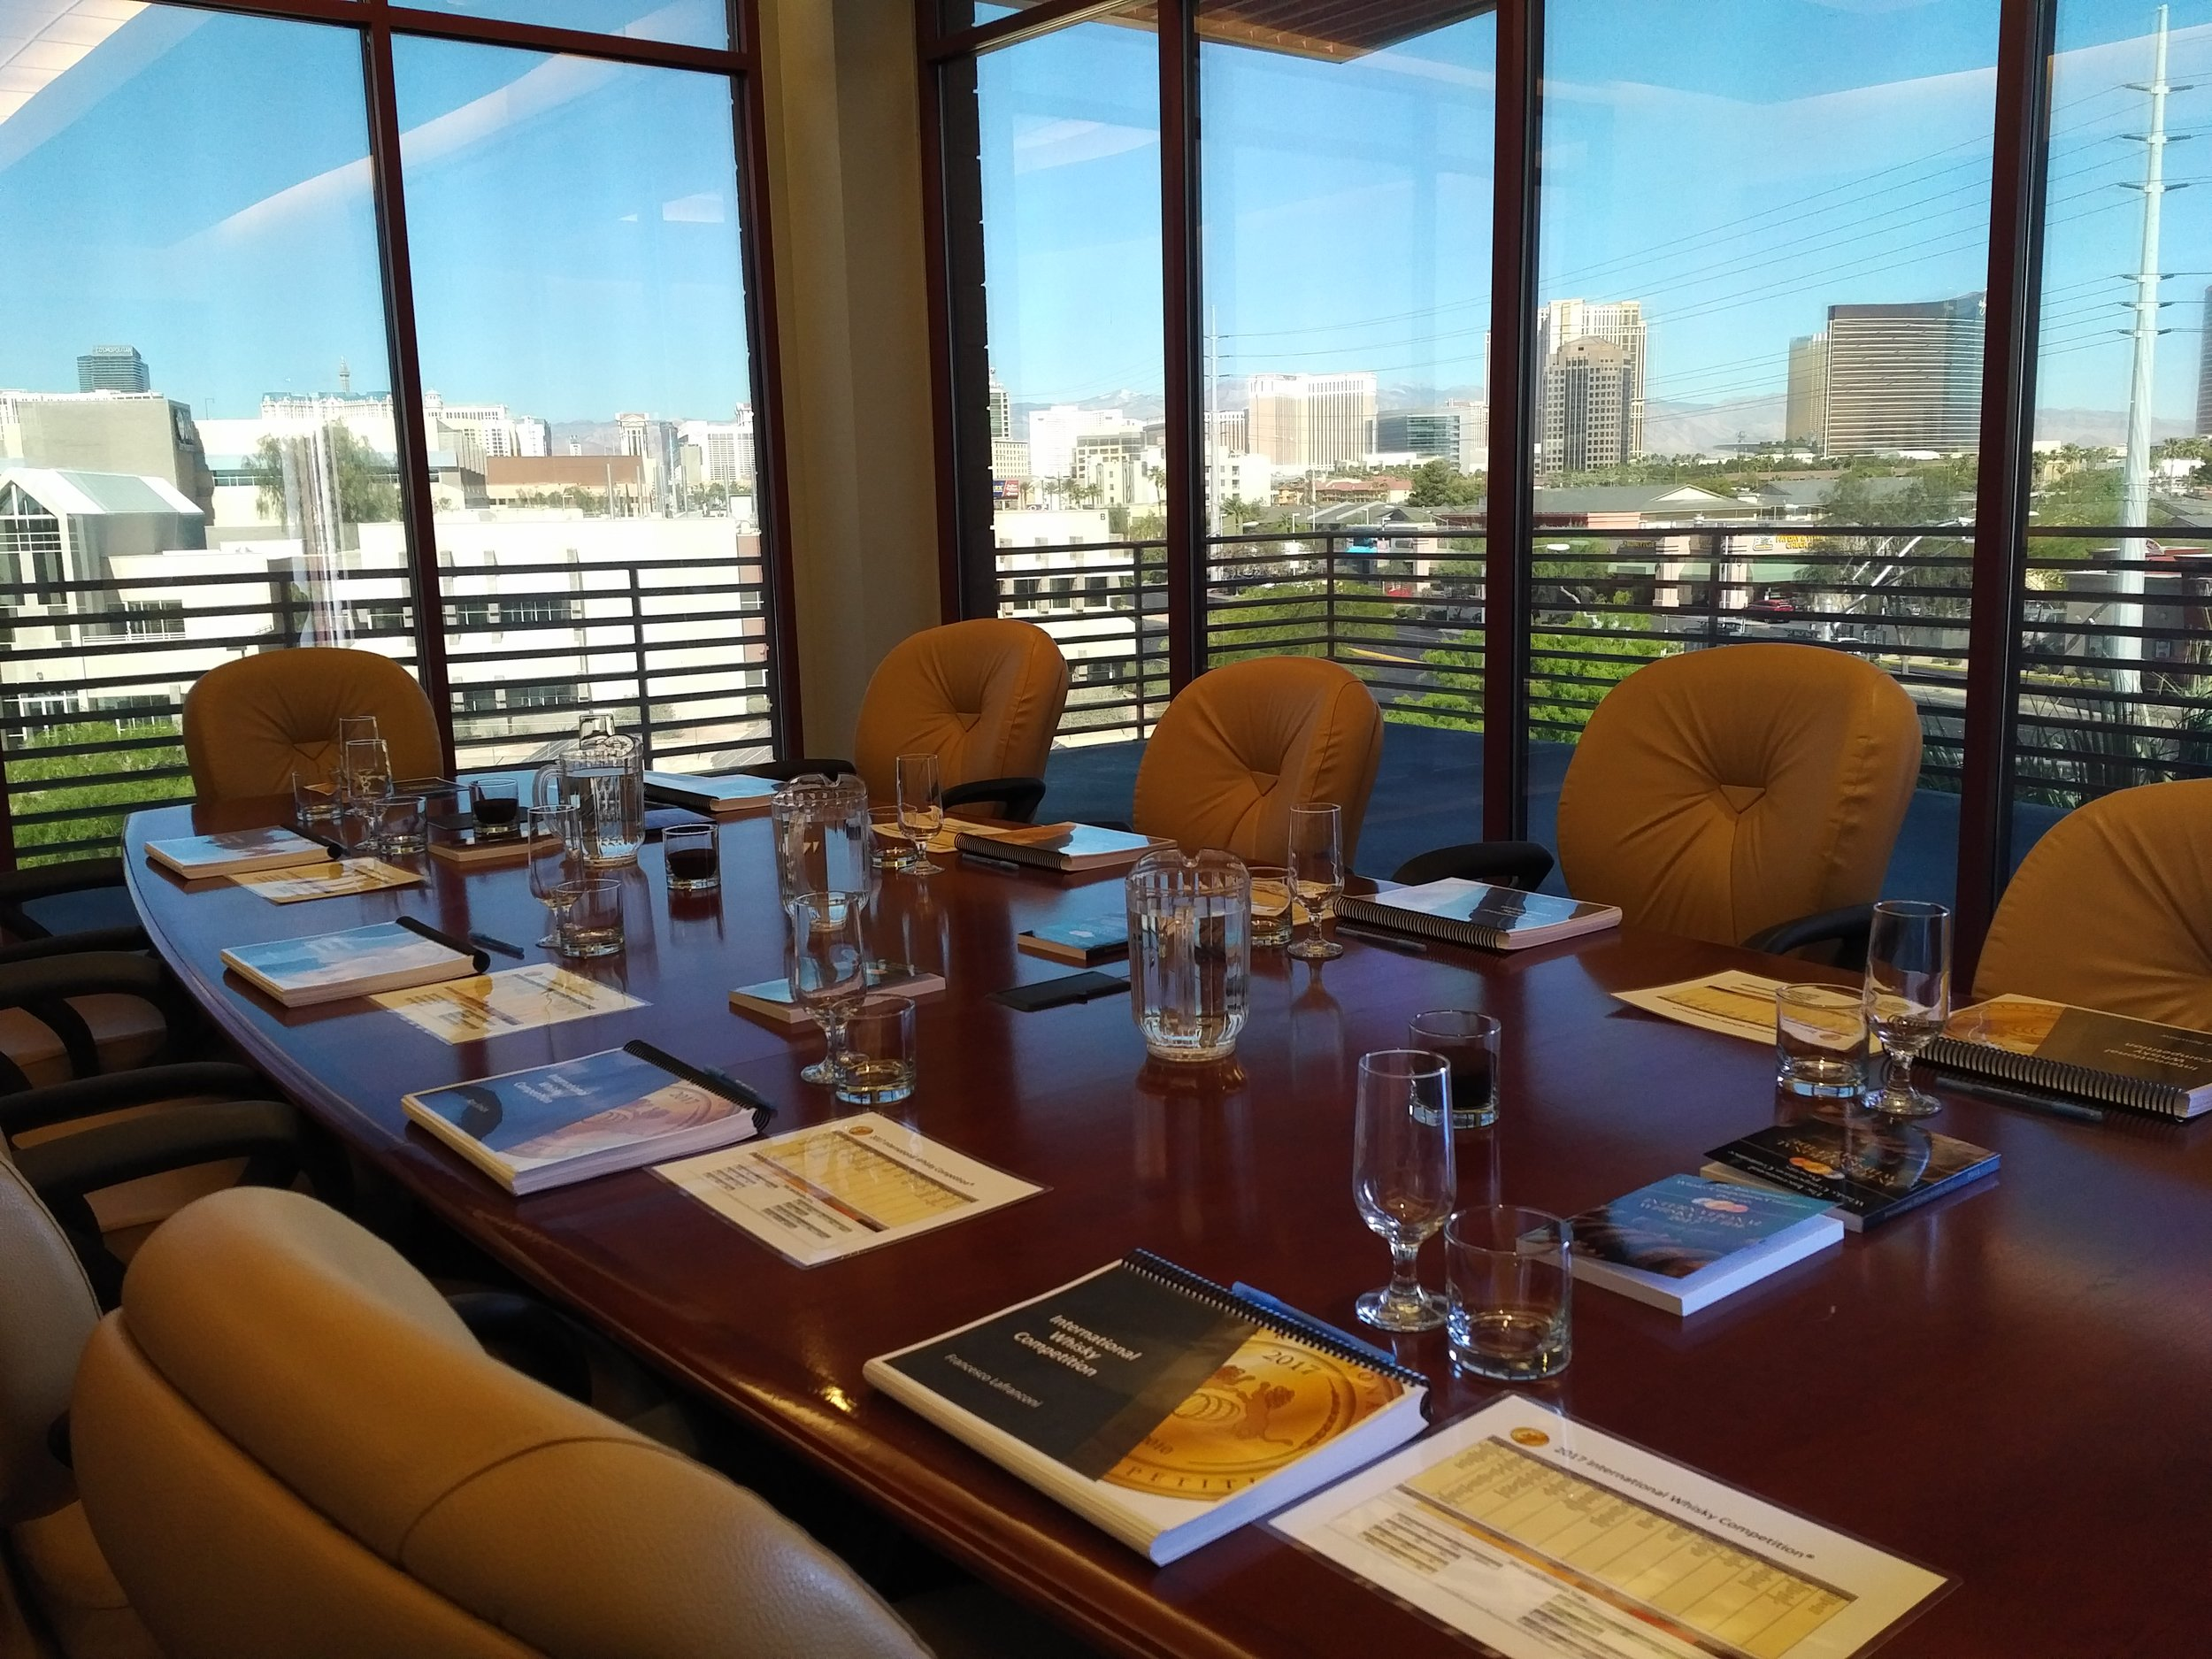 The tasting boardroom